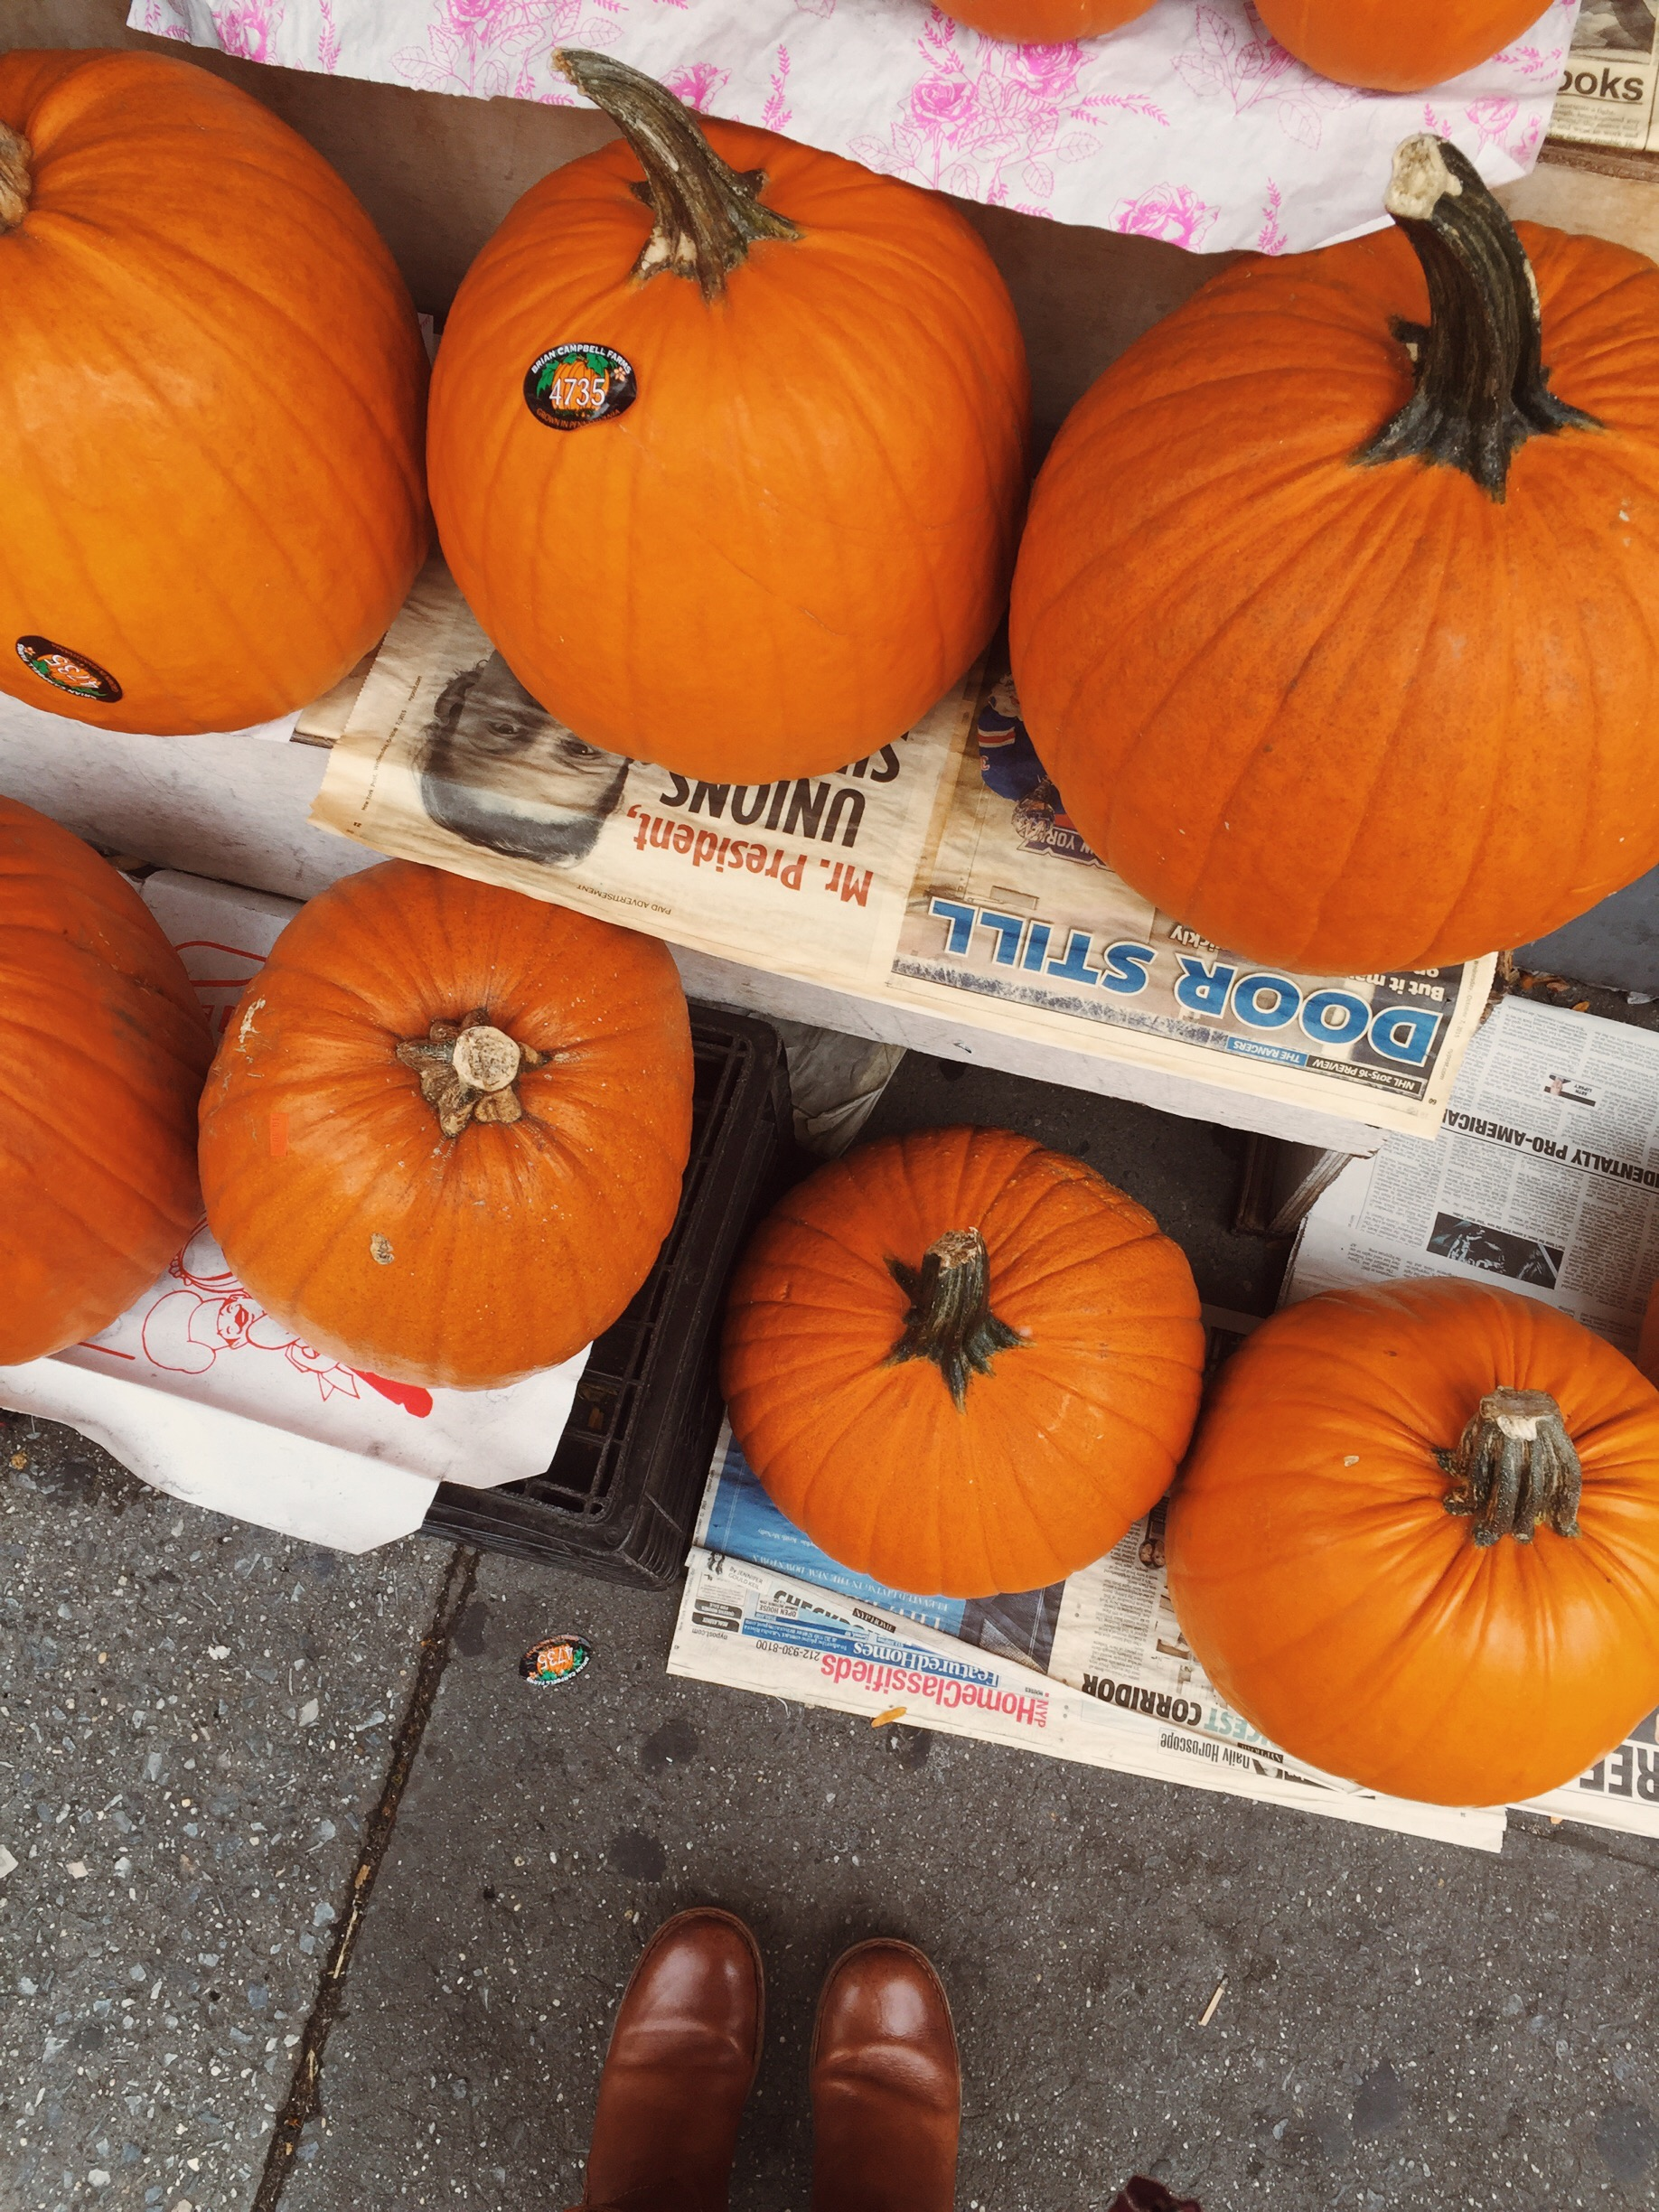 Pumpkins in NYC